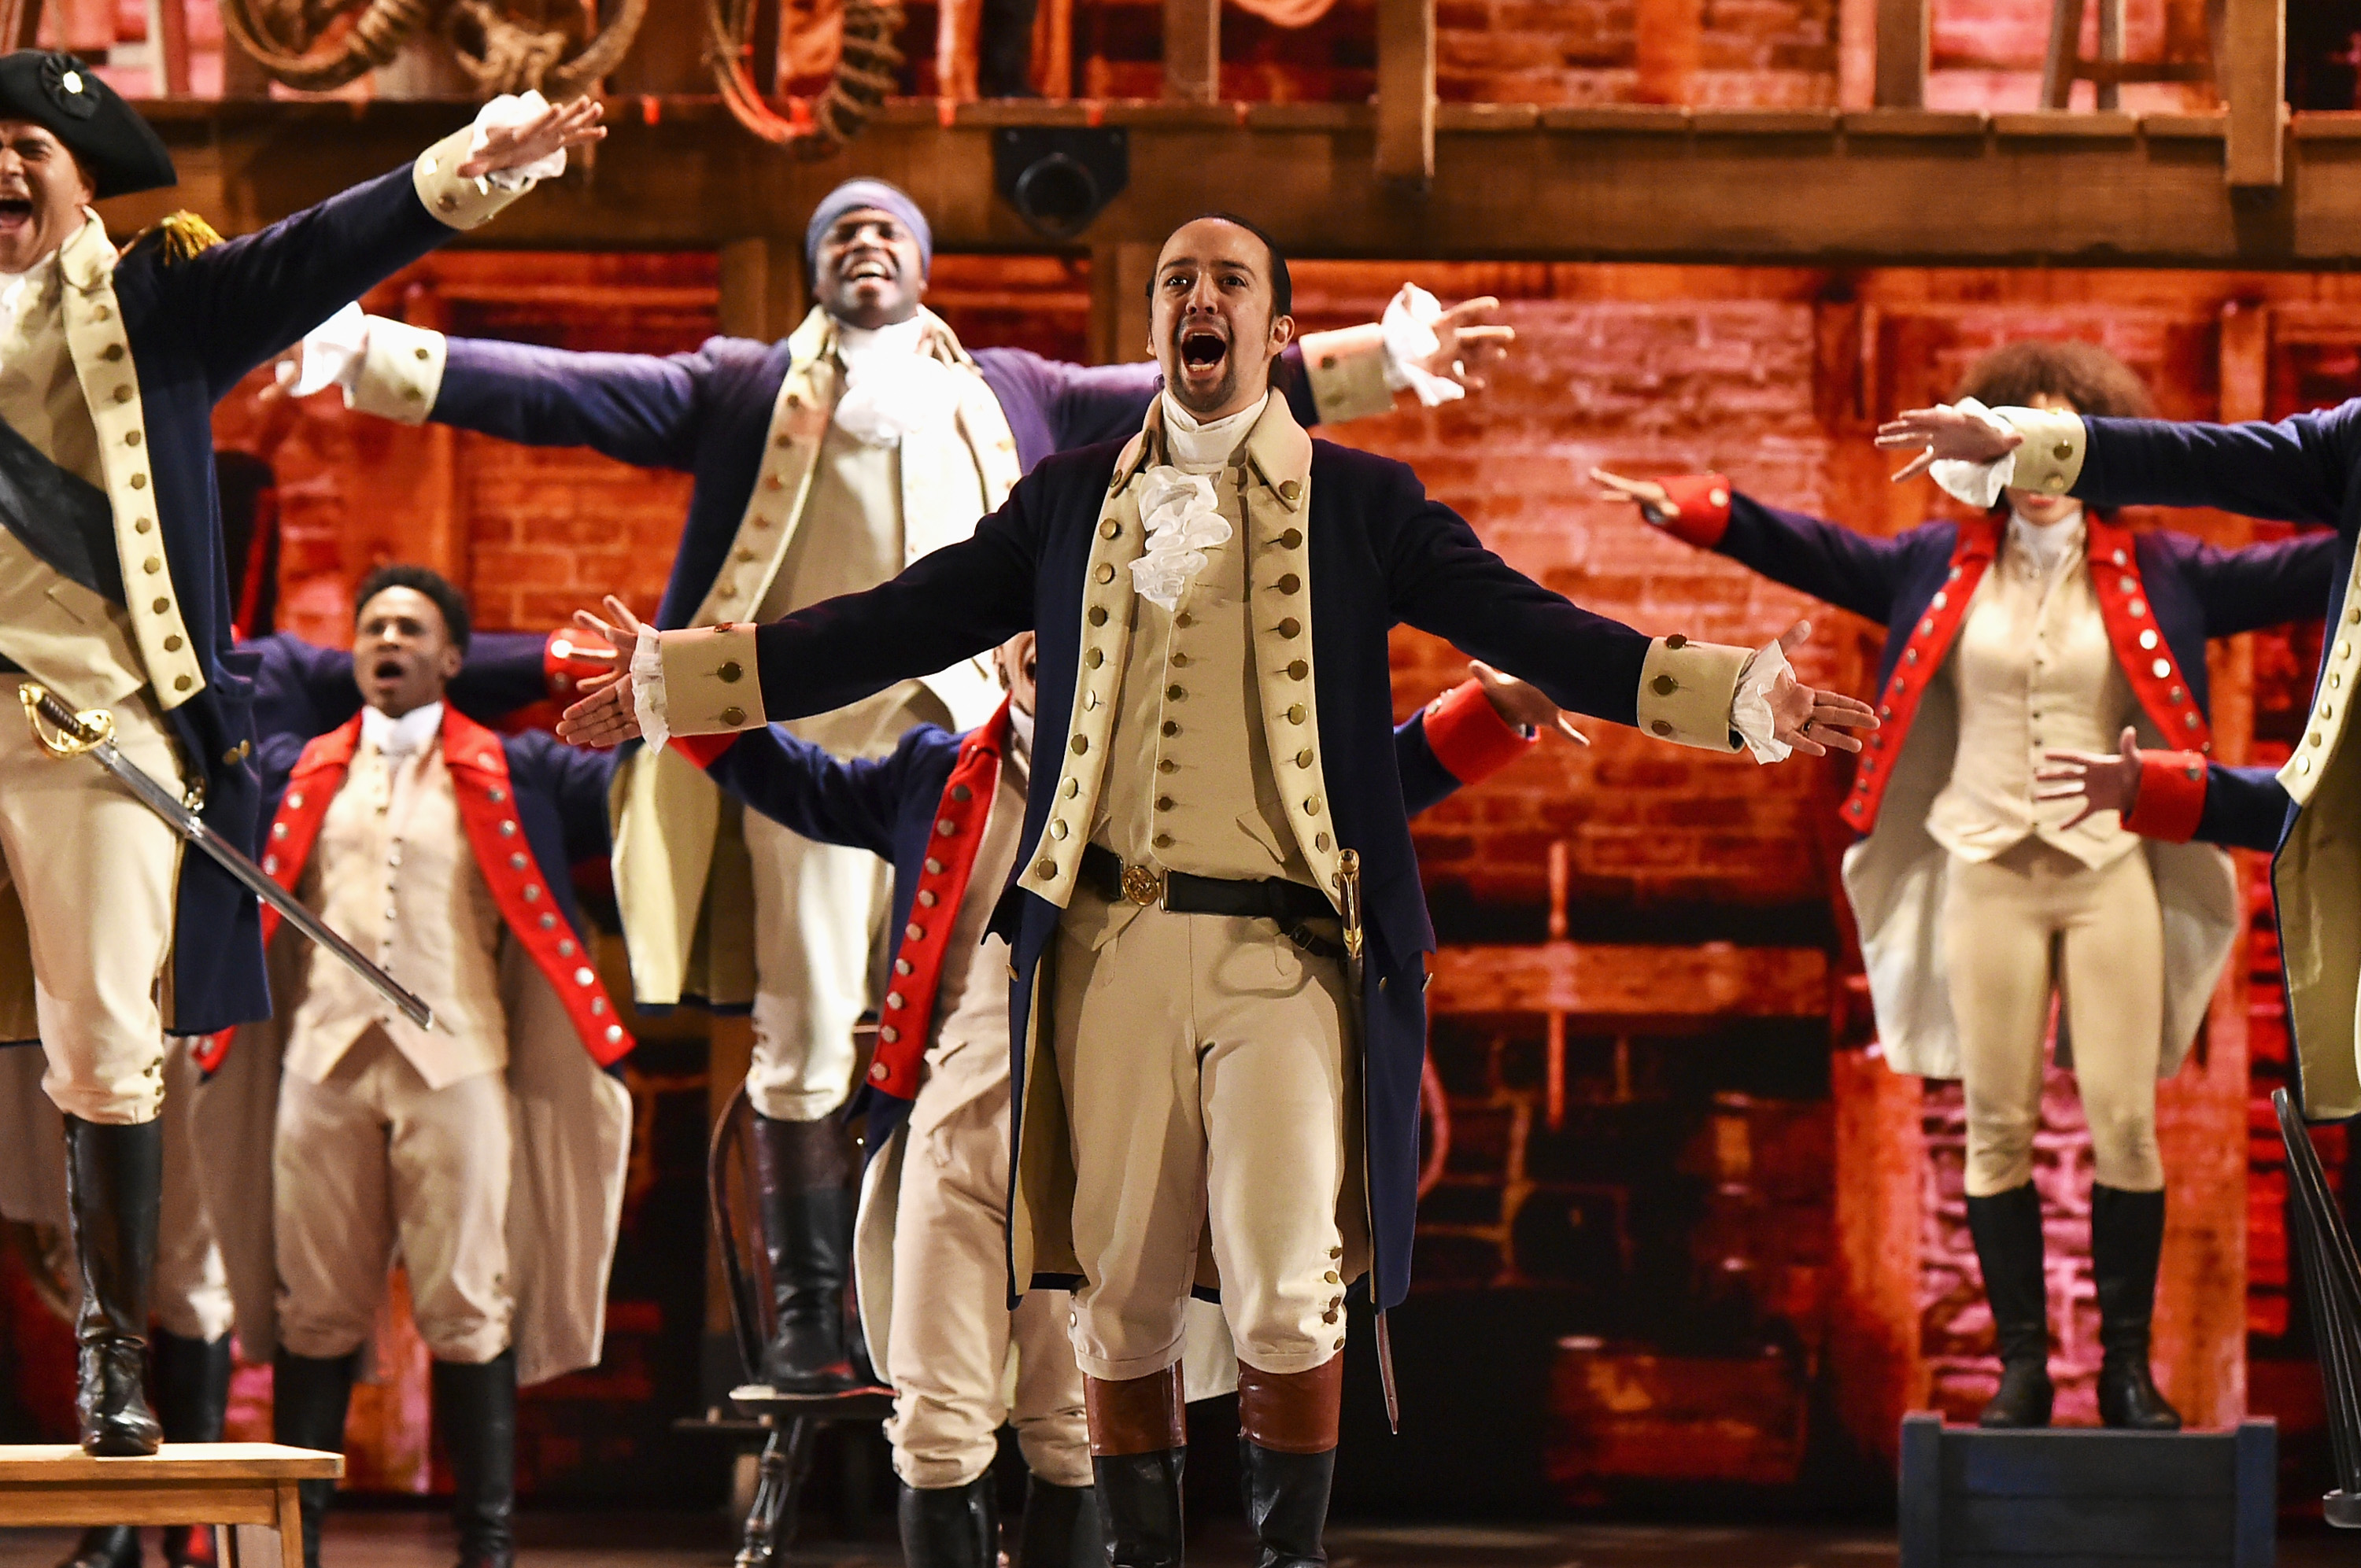 Tickets for Hamilton in London are already selling for almost £3,000 online